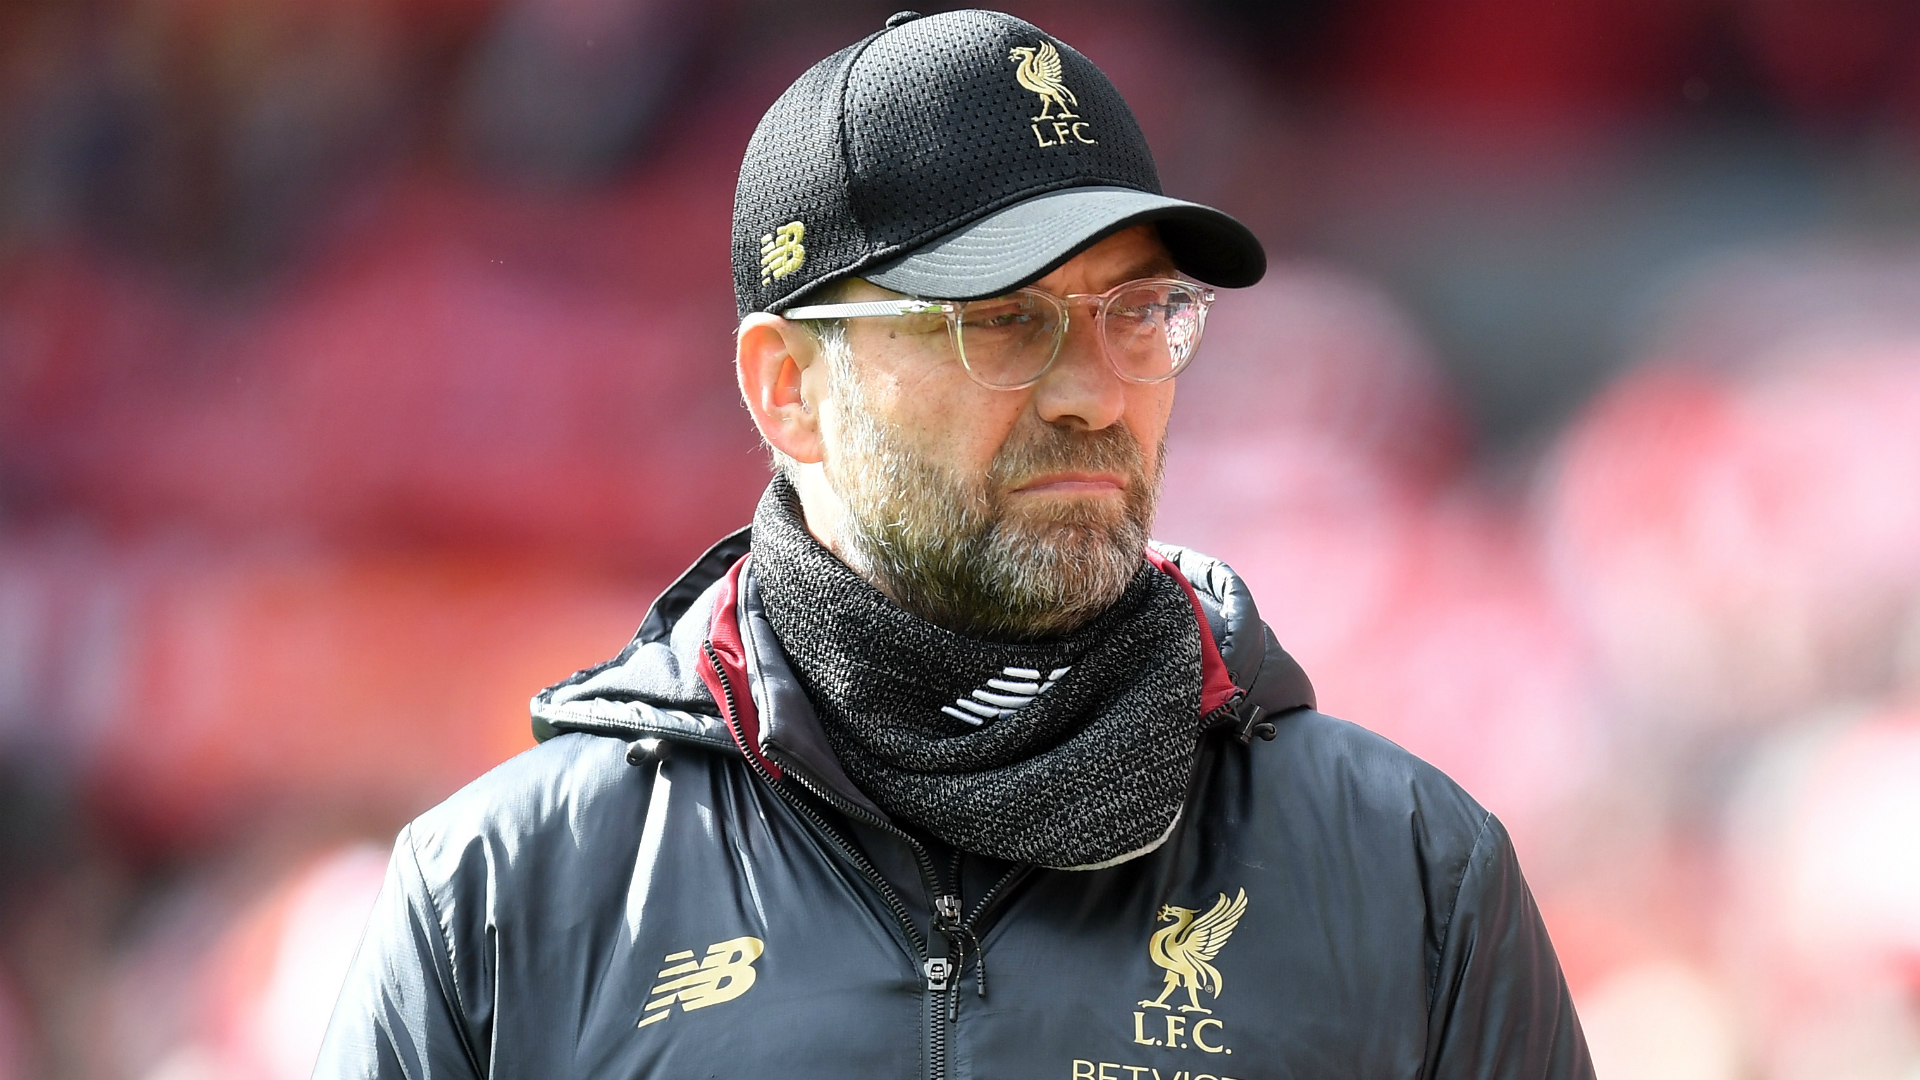 Jurgen Klopp is determined to keep Liverpool's Premier League title-chasing team together, instead of splashing the cash.